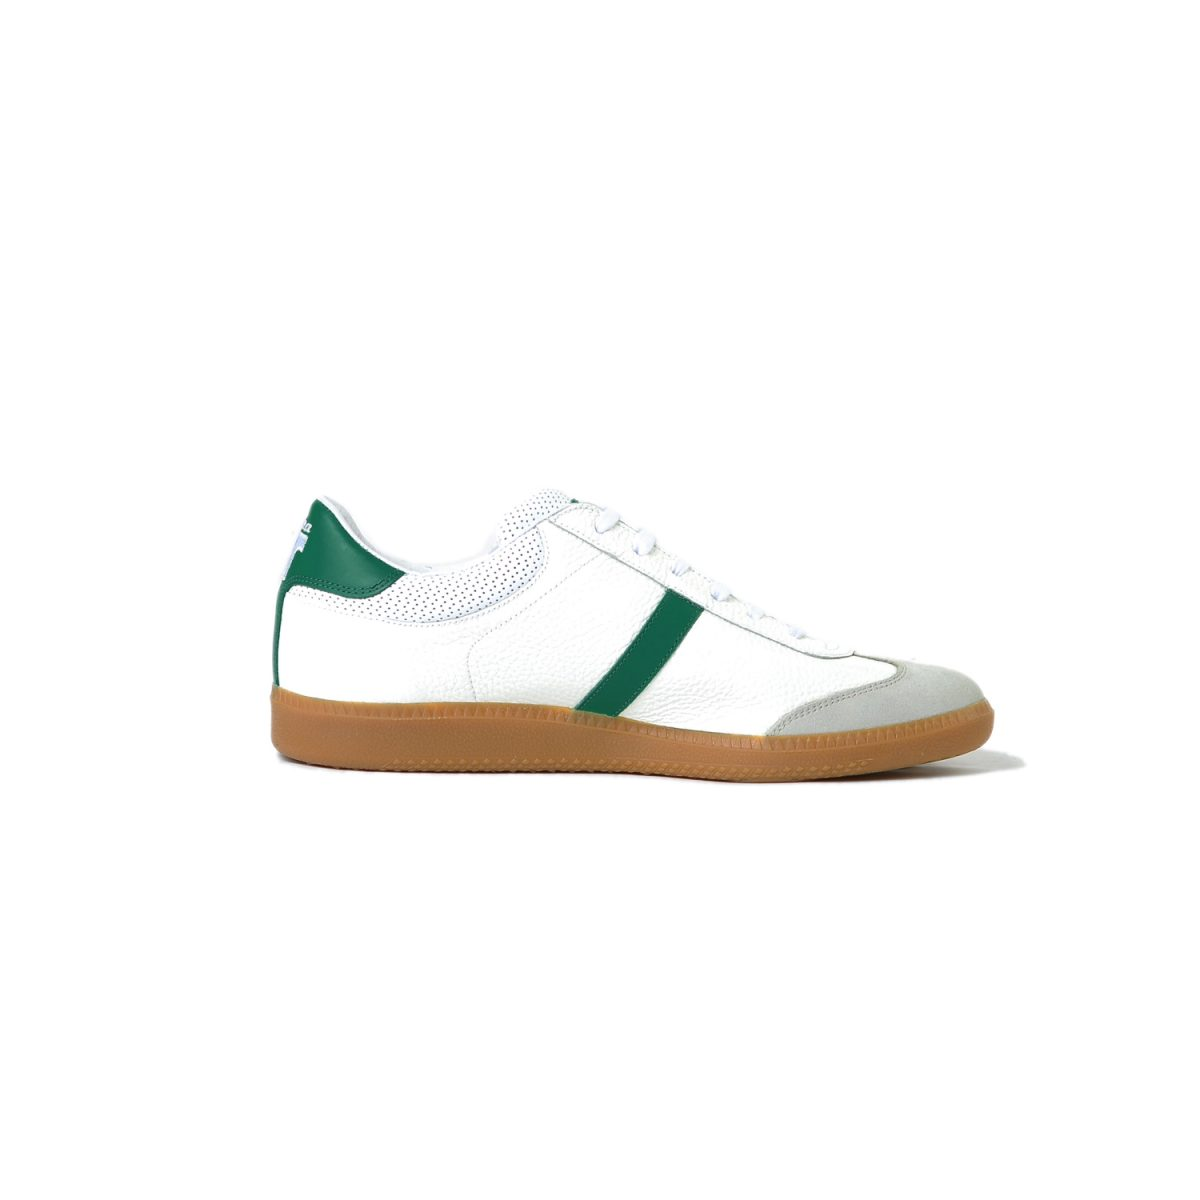 Tisza shoes - Compakt - White-green